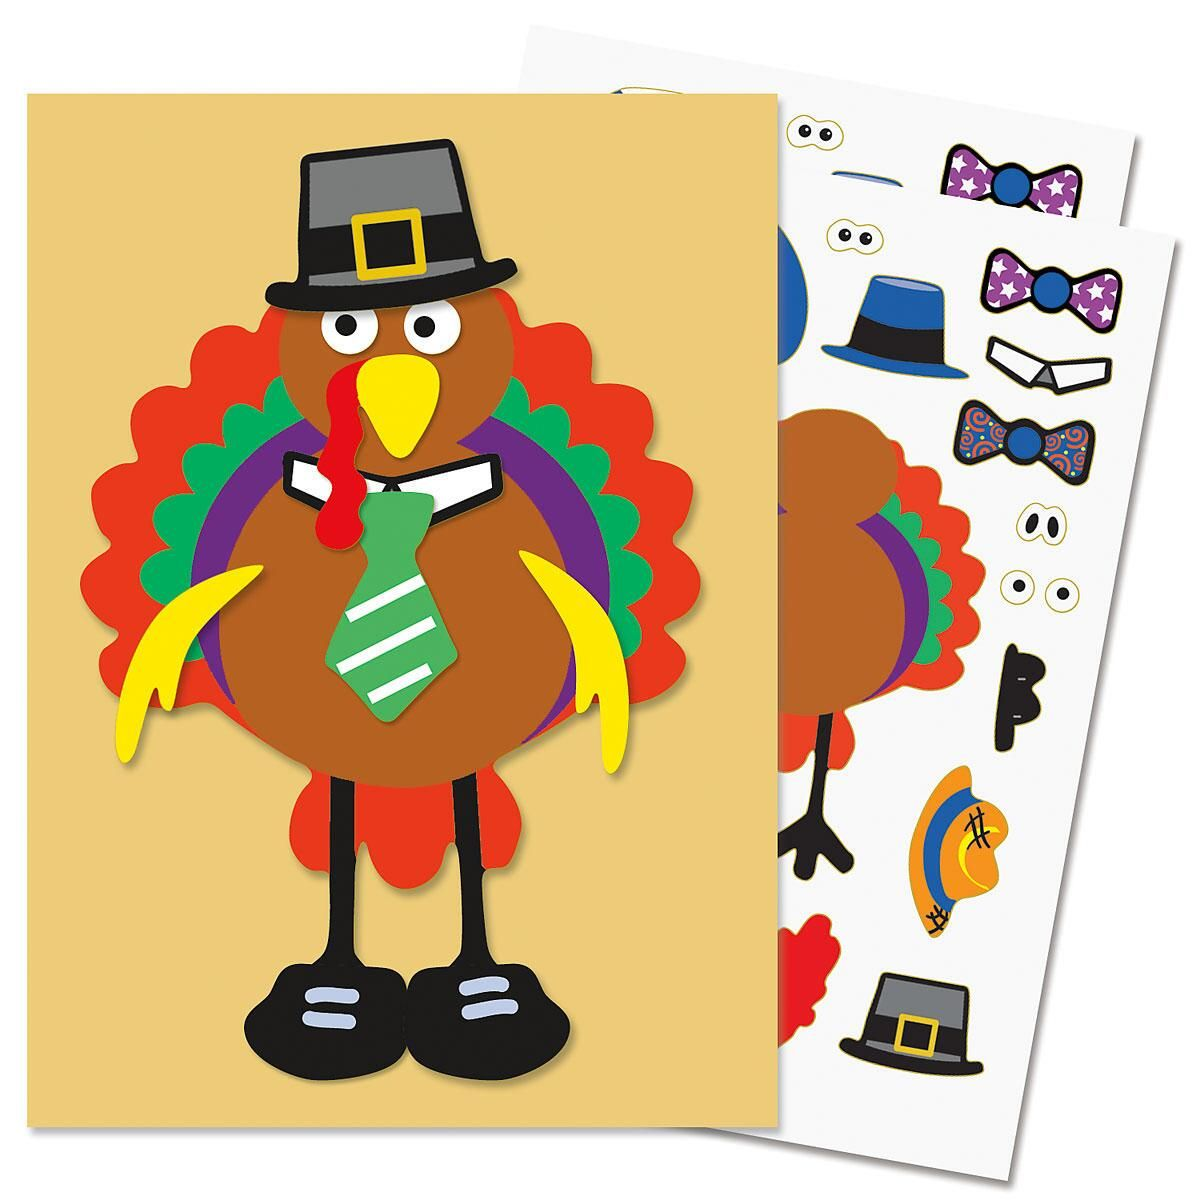 Make-A-Turkey Sticker Sheets